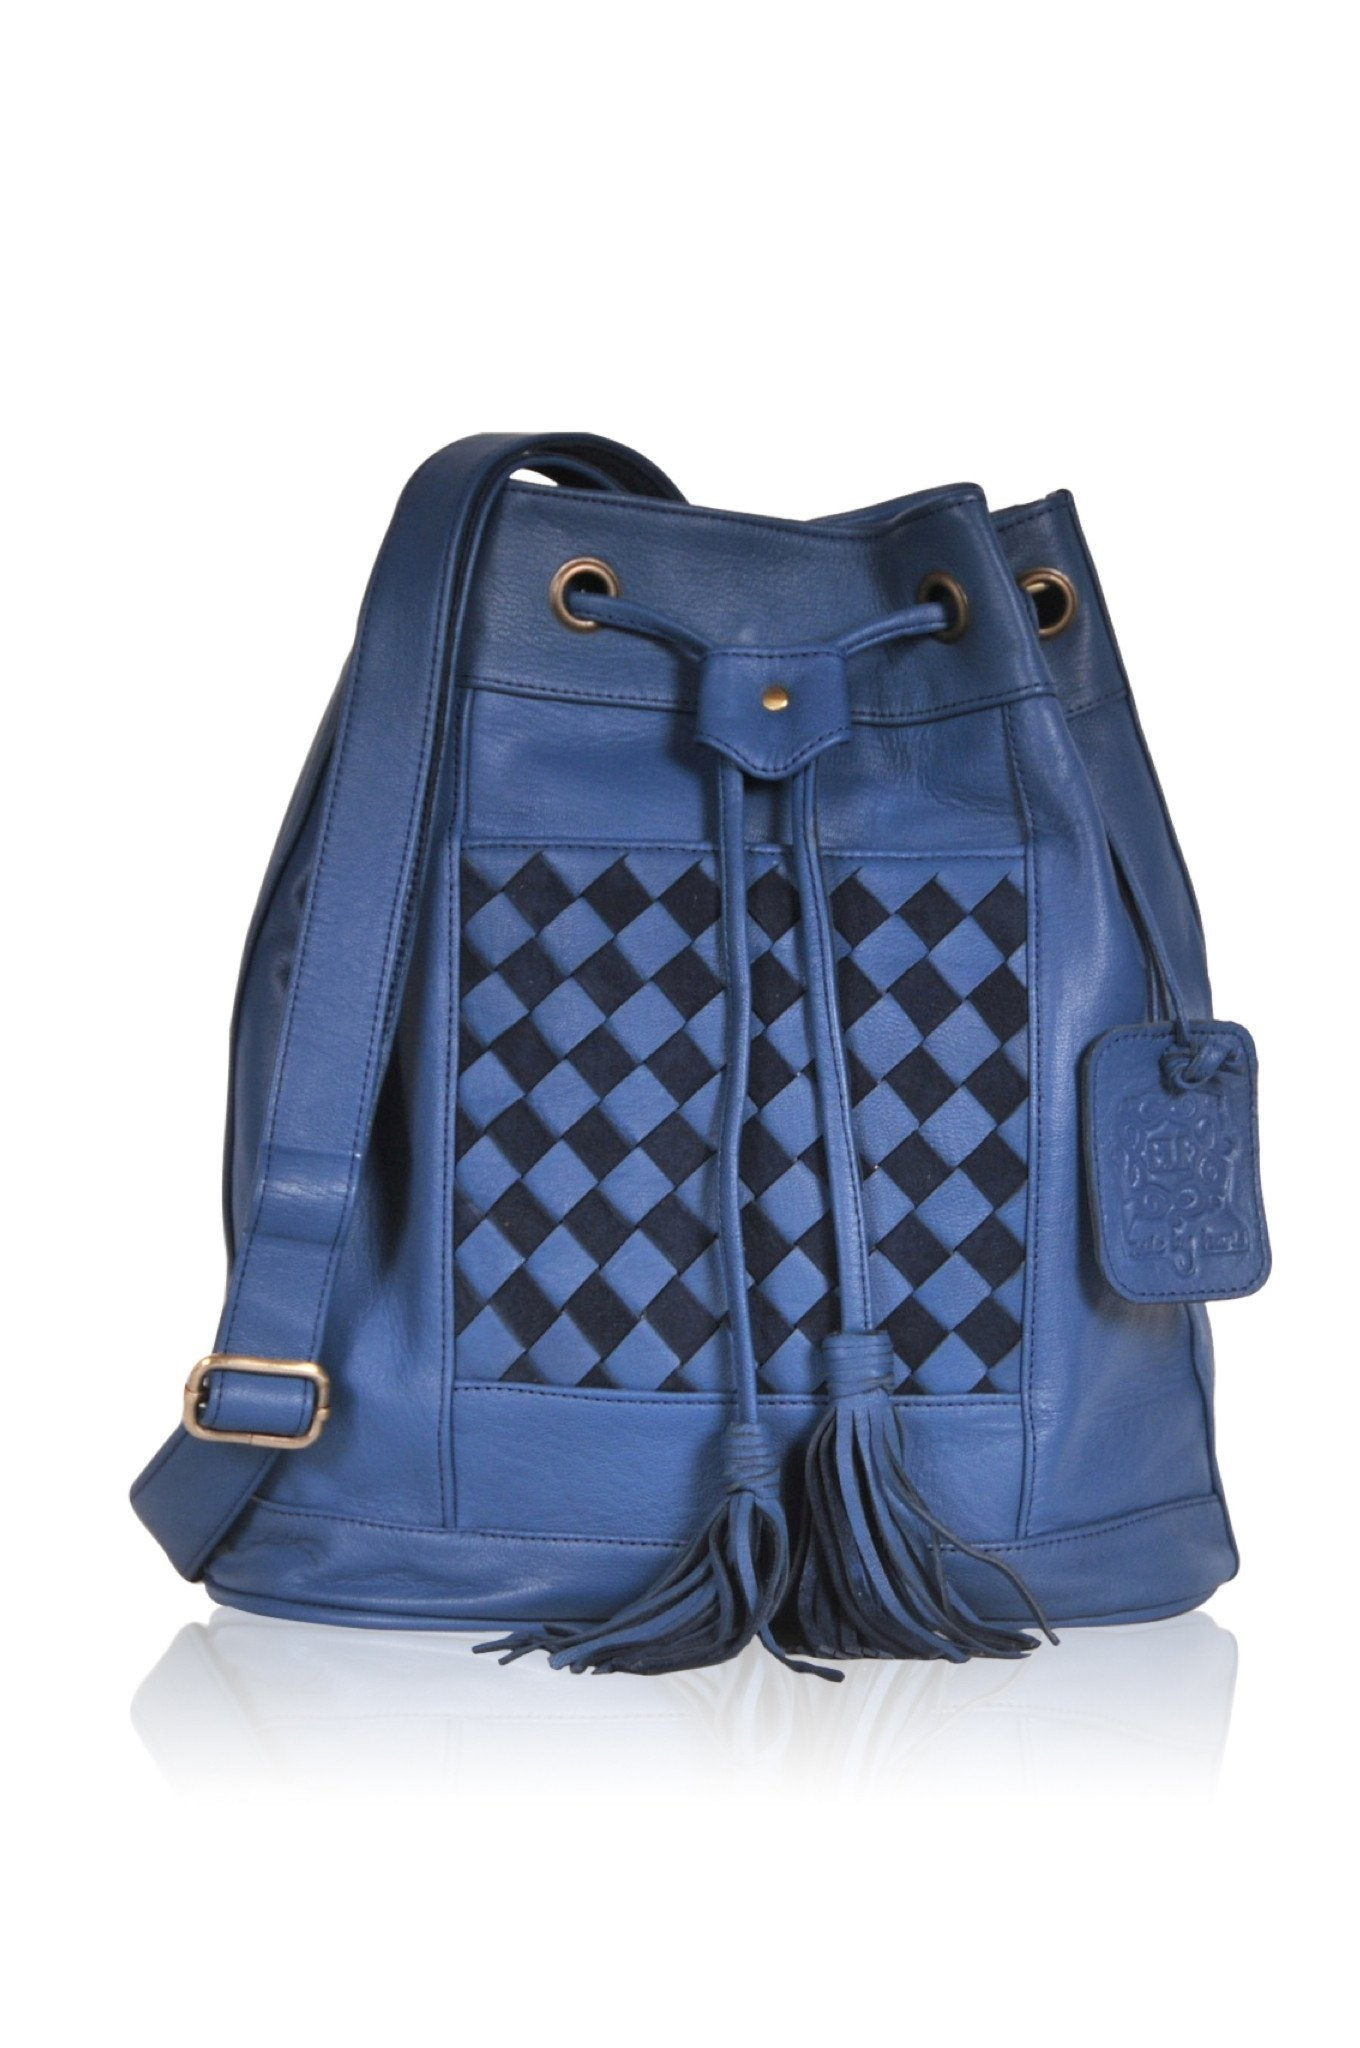 Blue leather back pack